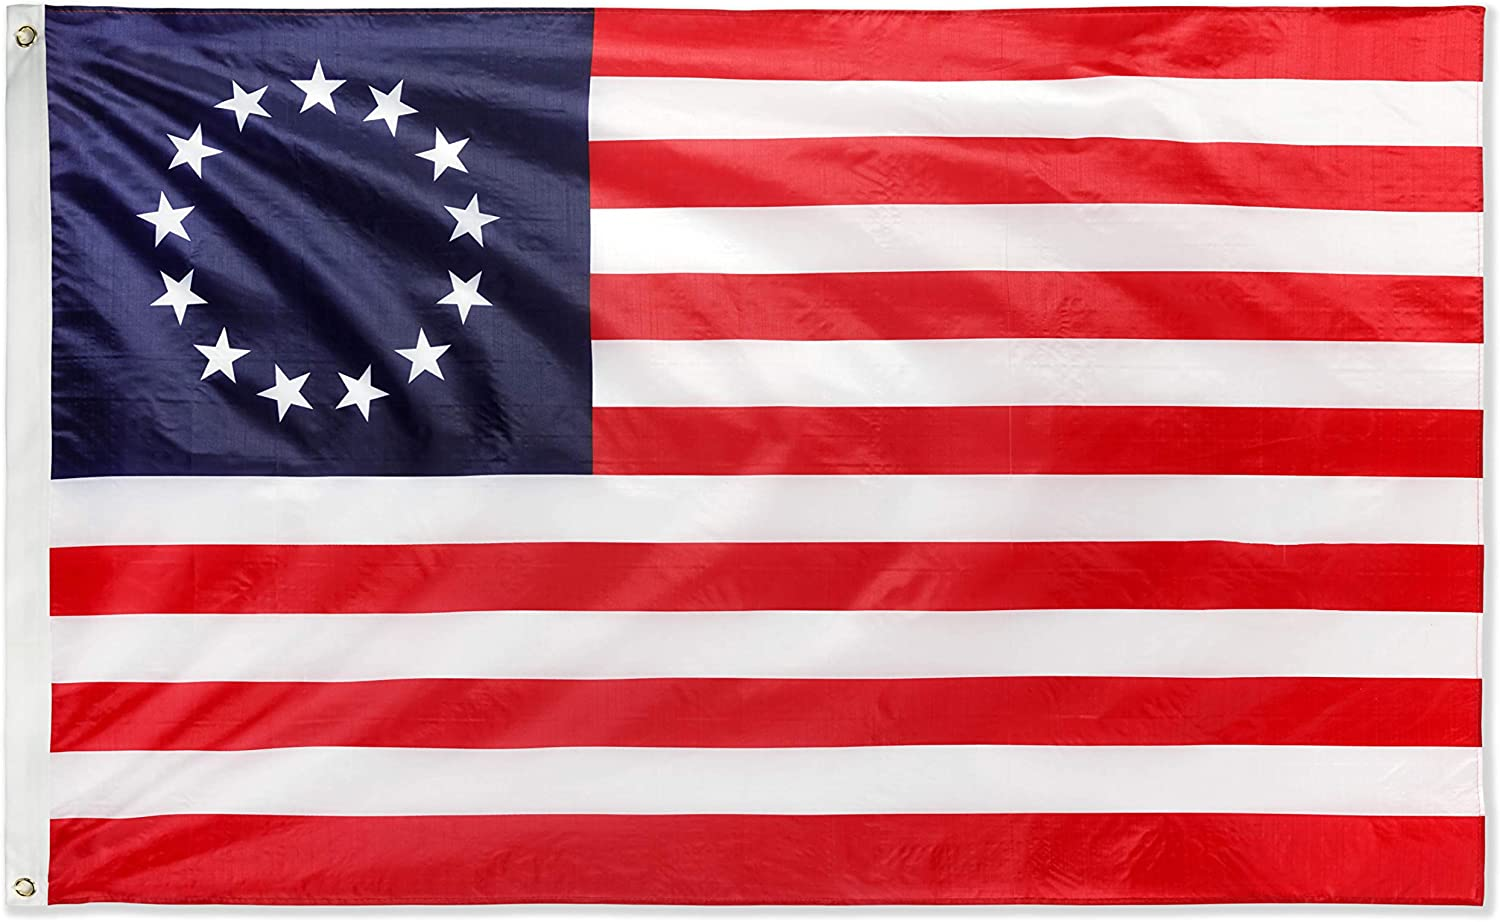 DANF Betsy Ross Flag 3x5ft - 100D Thicker Polyester - 13 Stars American USA America Historical Flags Double Sided Canvas Header with Brass Grommets Indoor & Outdoor Use